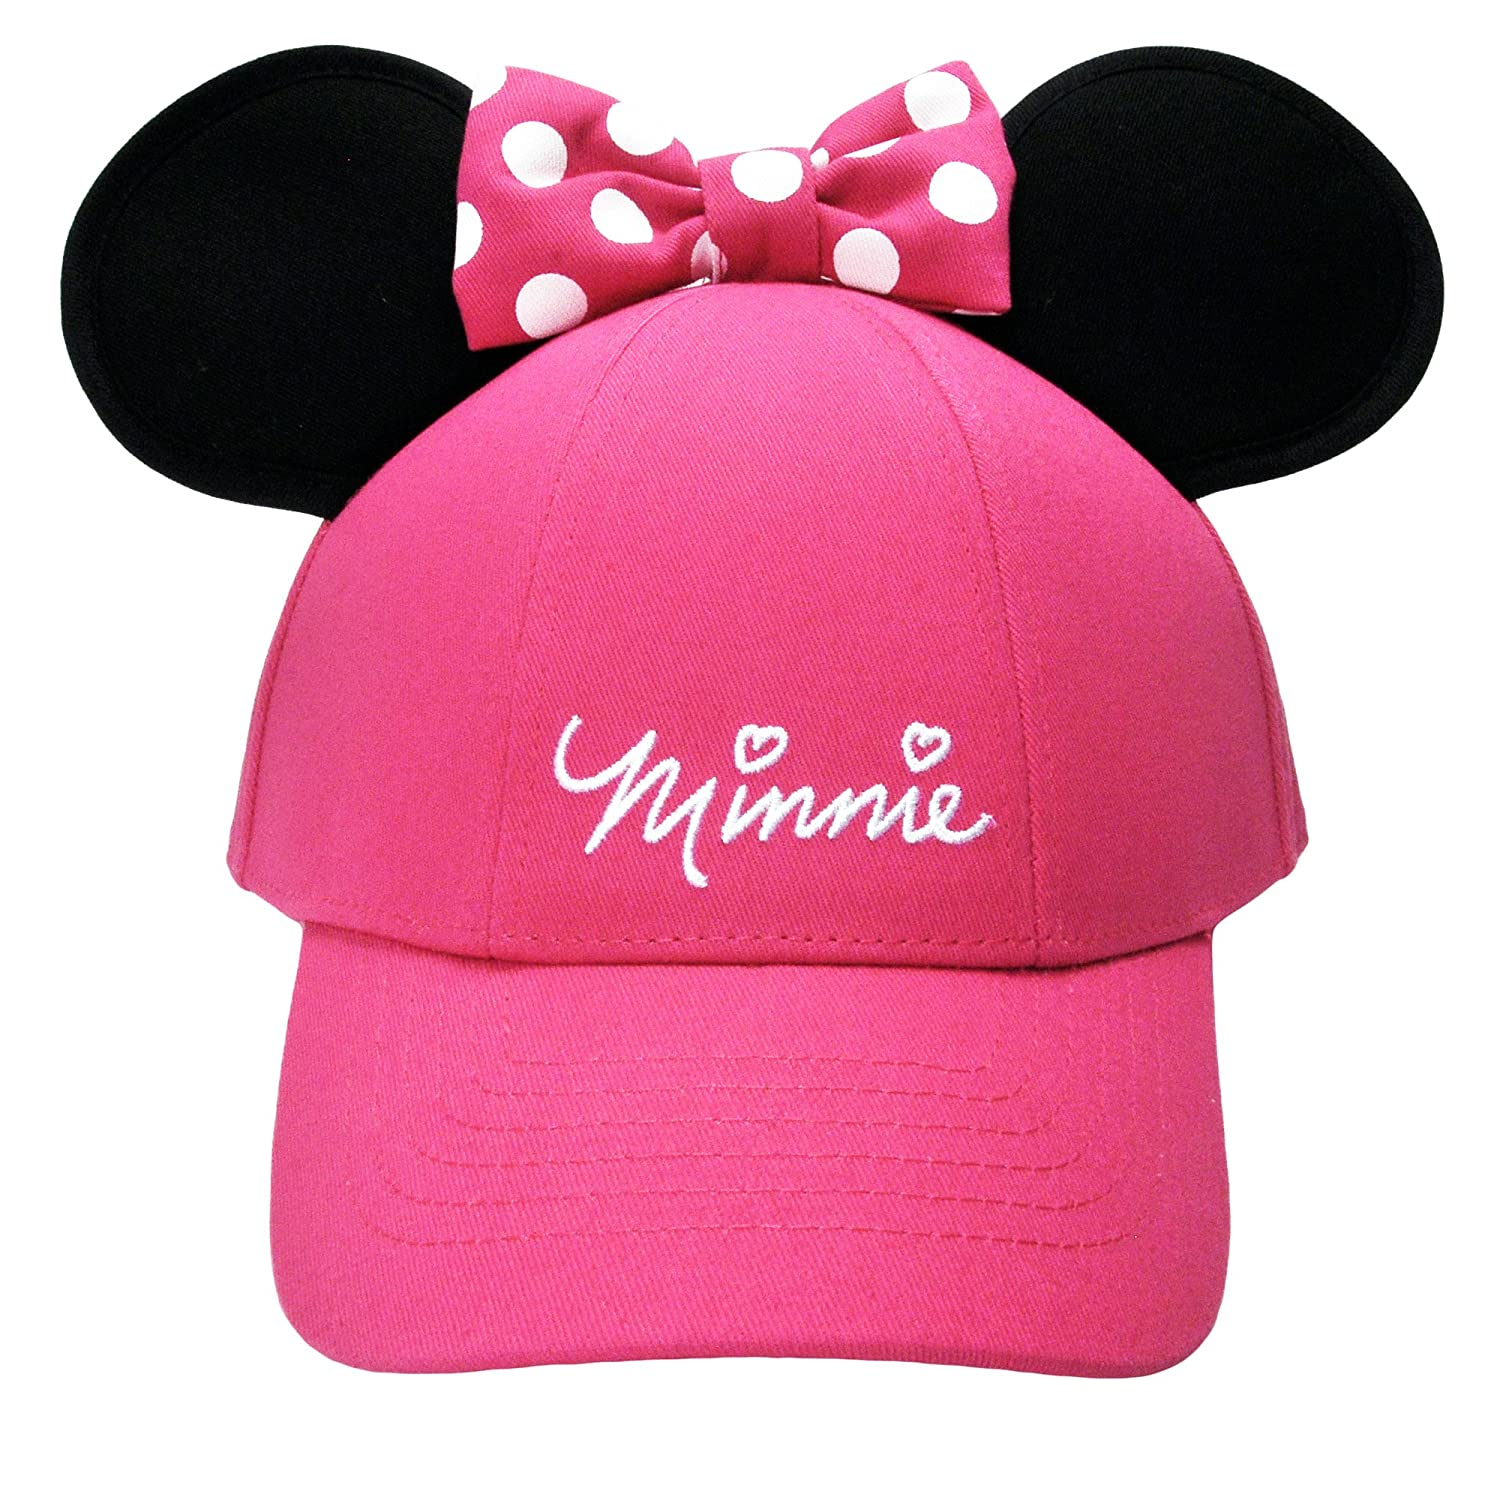 Disney Youth Hat Kids Cap with Mickey or Minnie Mouse Ears Minnie Pink